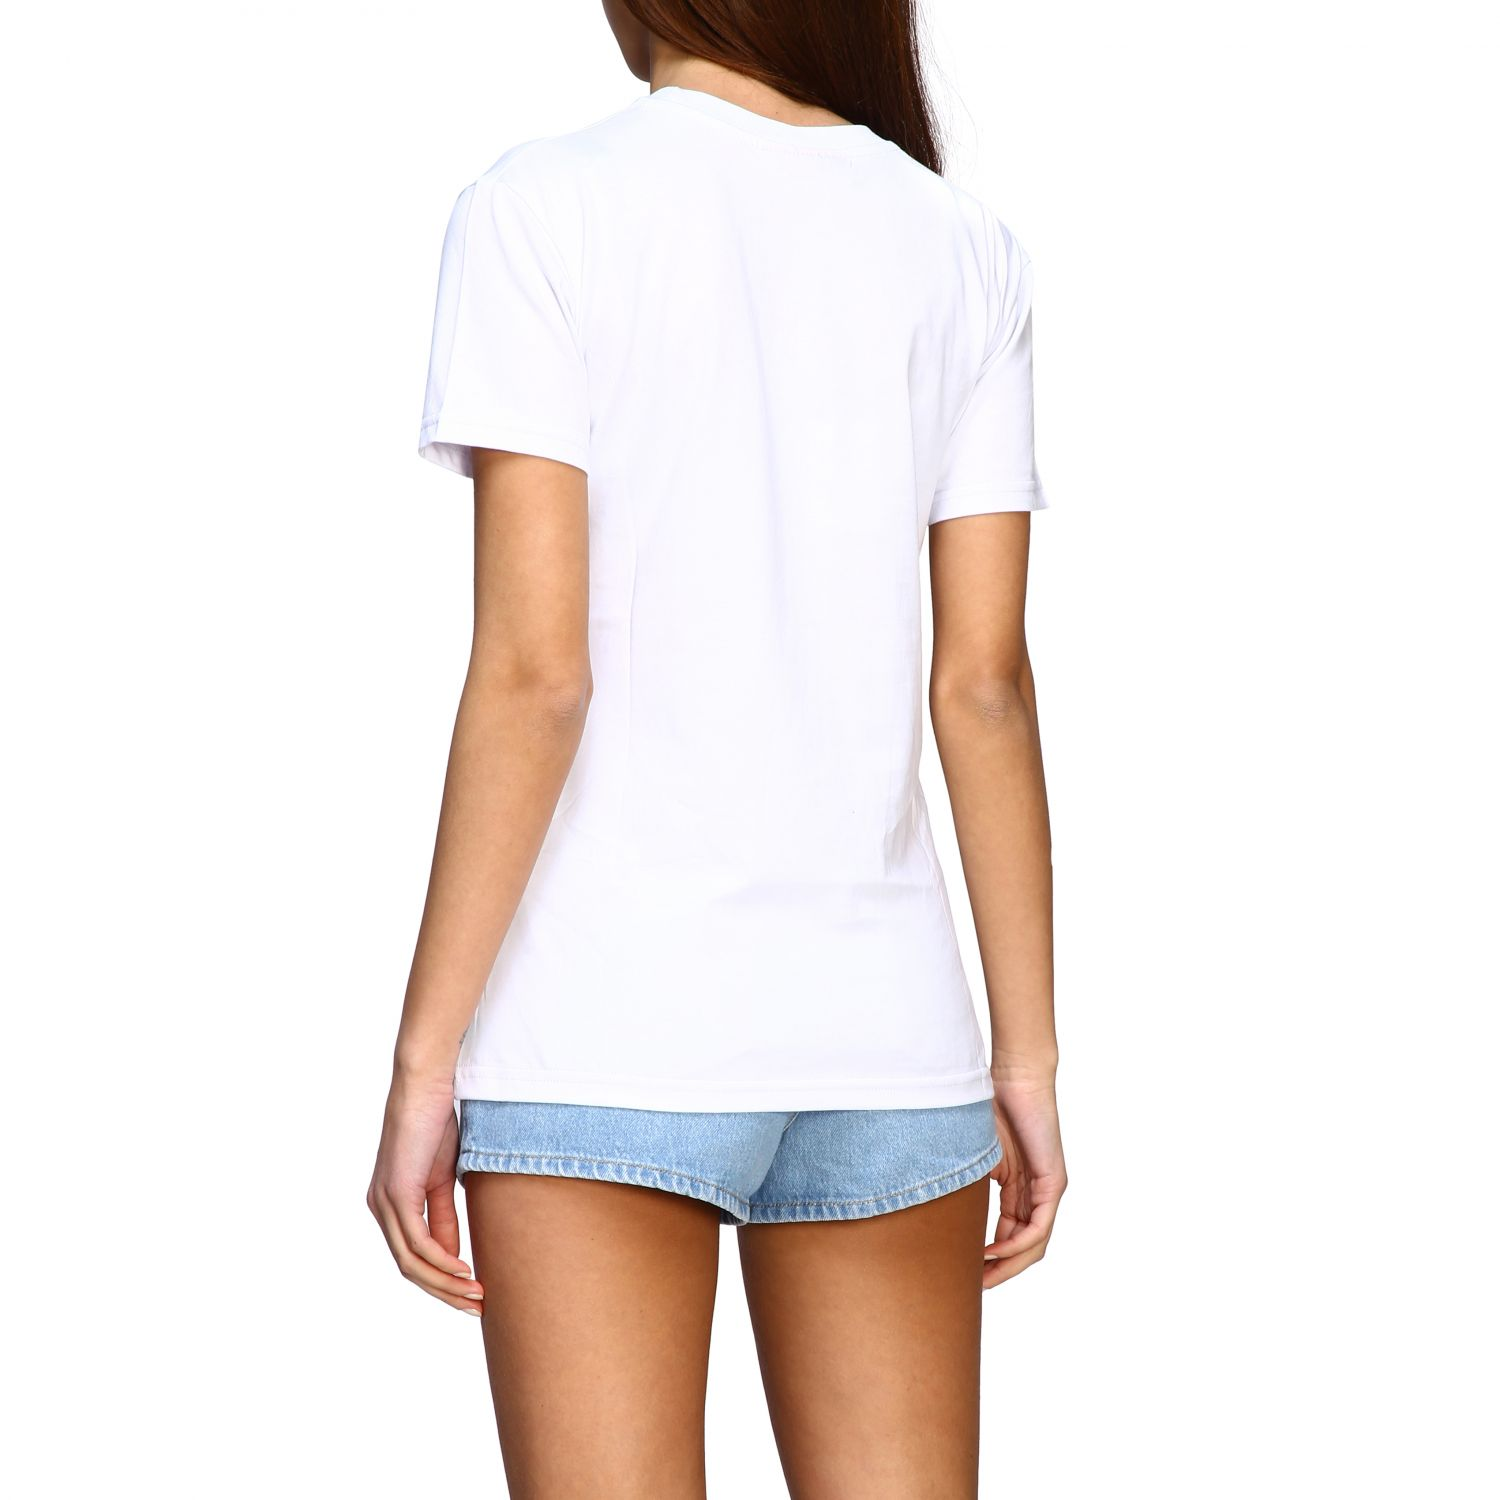 T-shirt women Chiara Ferragni white 3